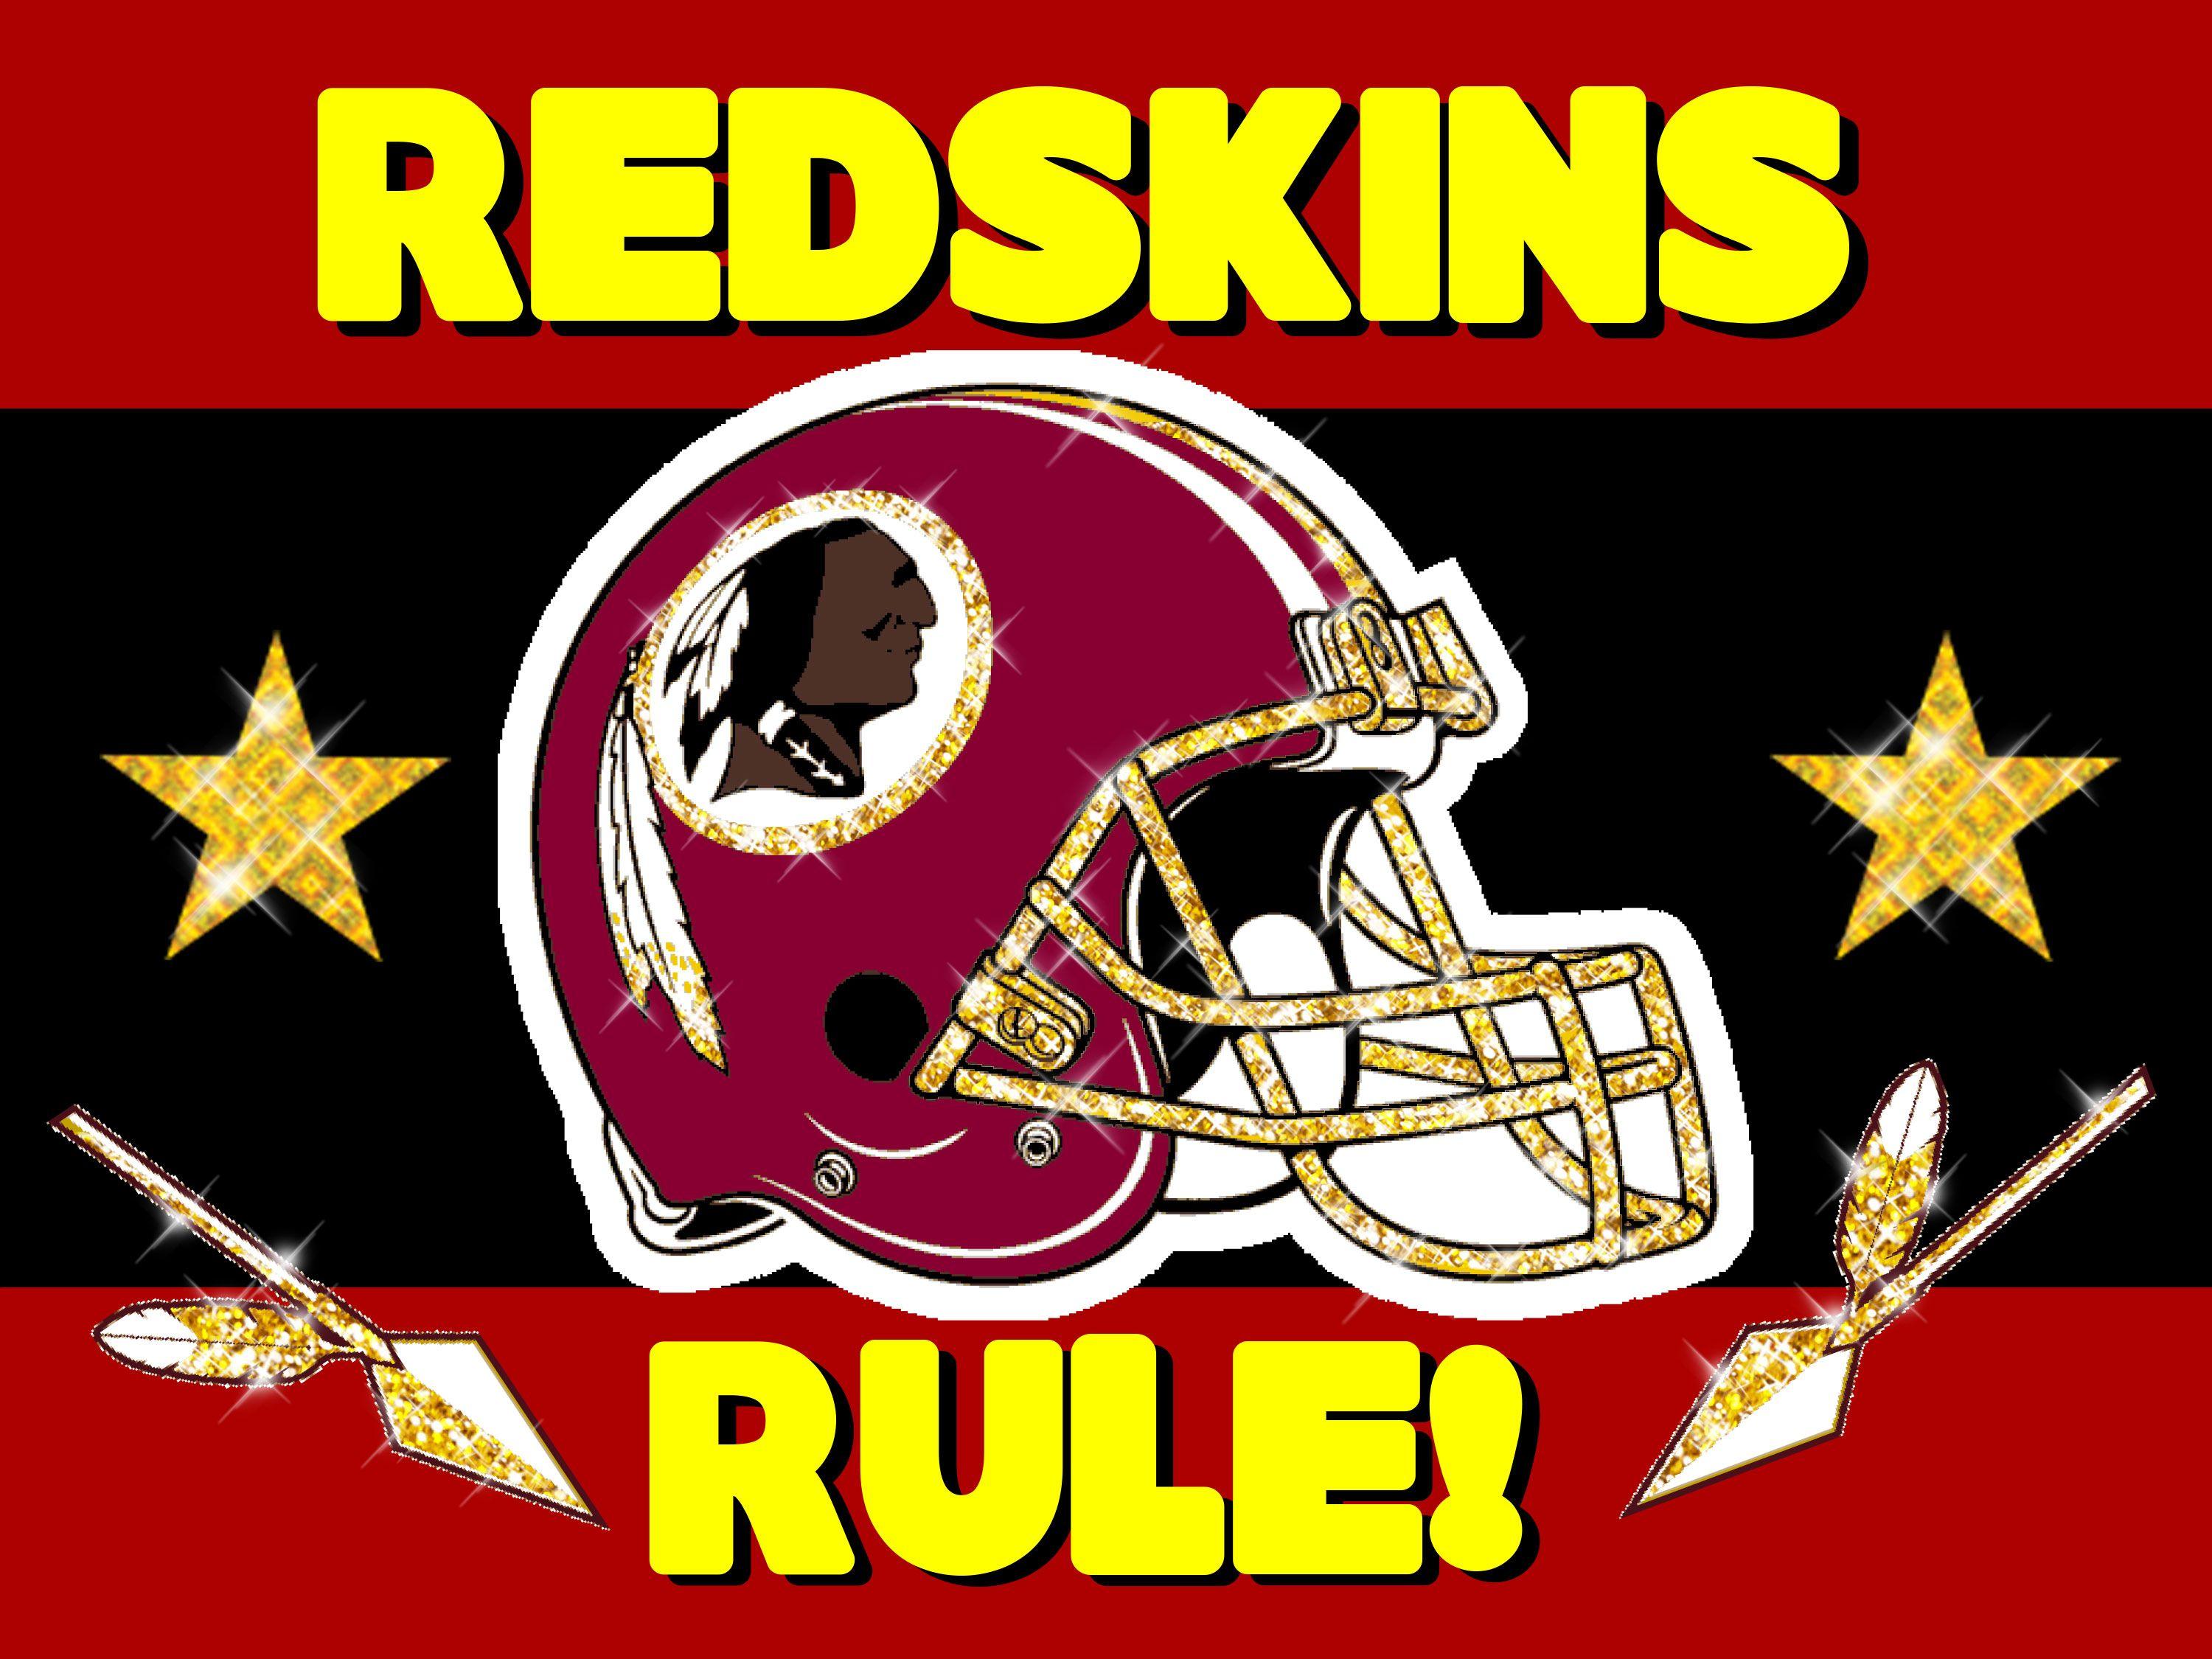 Washington Redskins Poster Idea Redskins, Redskins logo